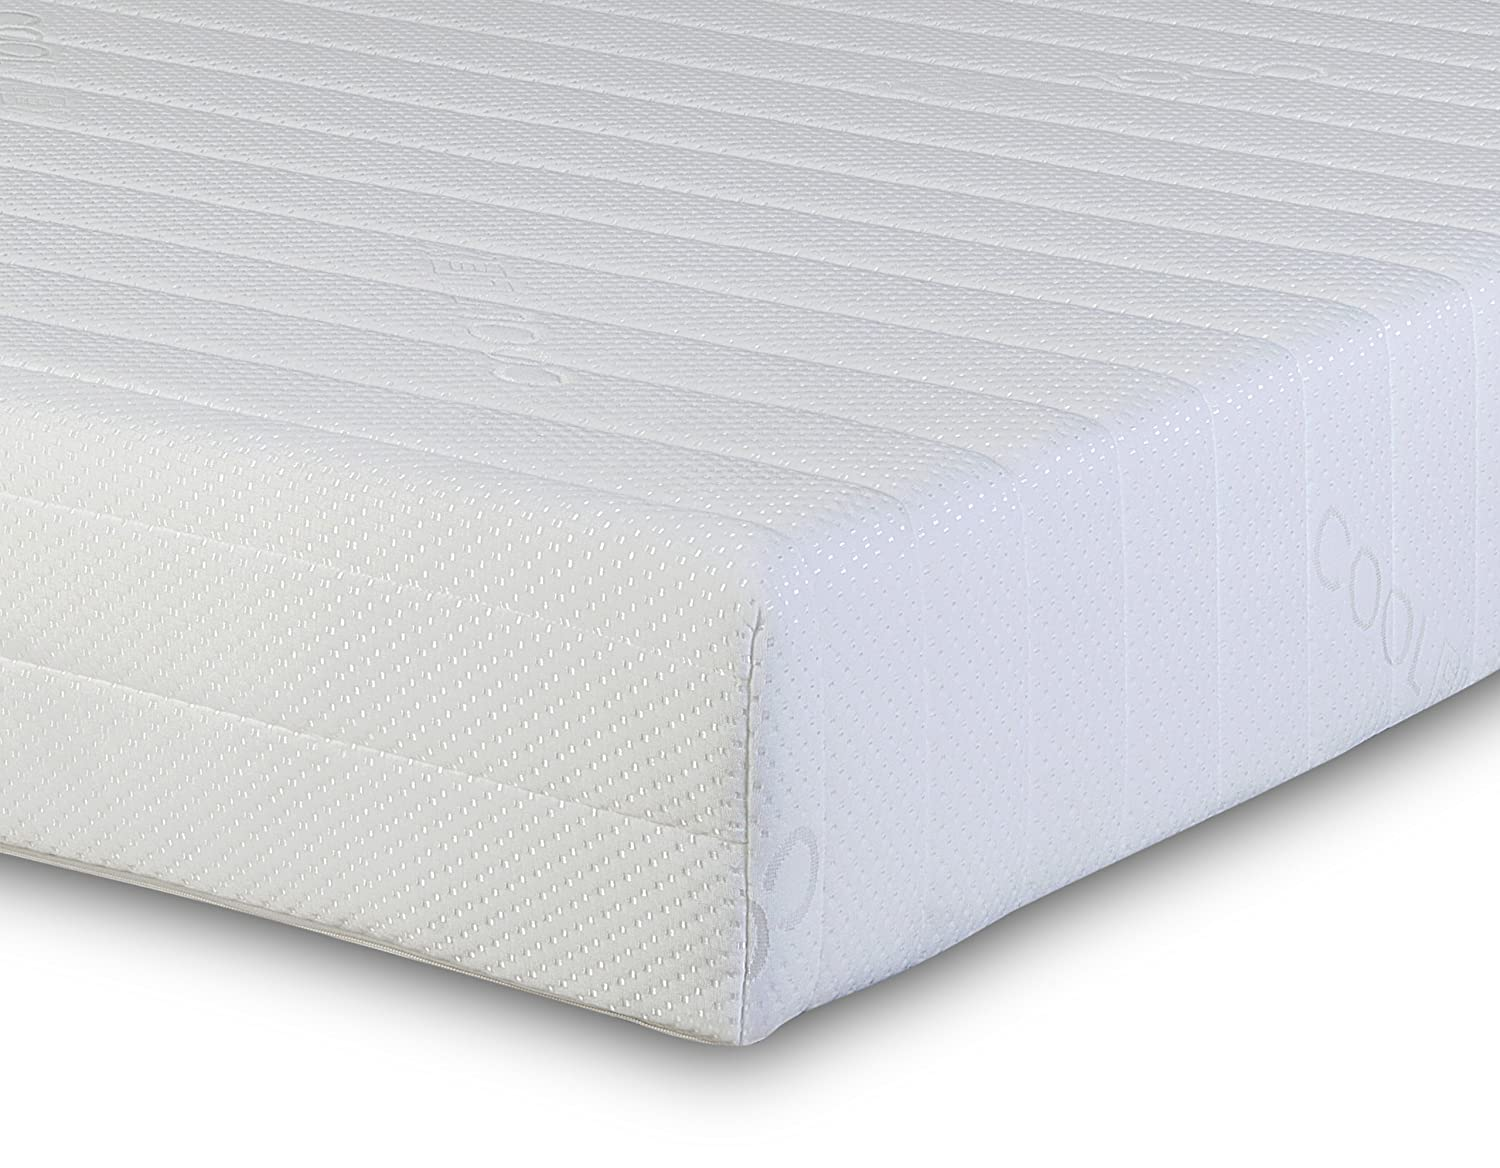 visco therapy luxury reflex coil spring flexi rolled mattress double amazoncouk kitchen u0026 home